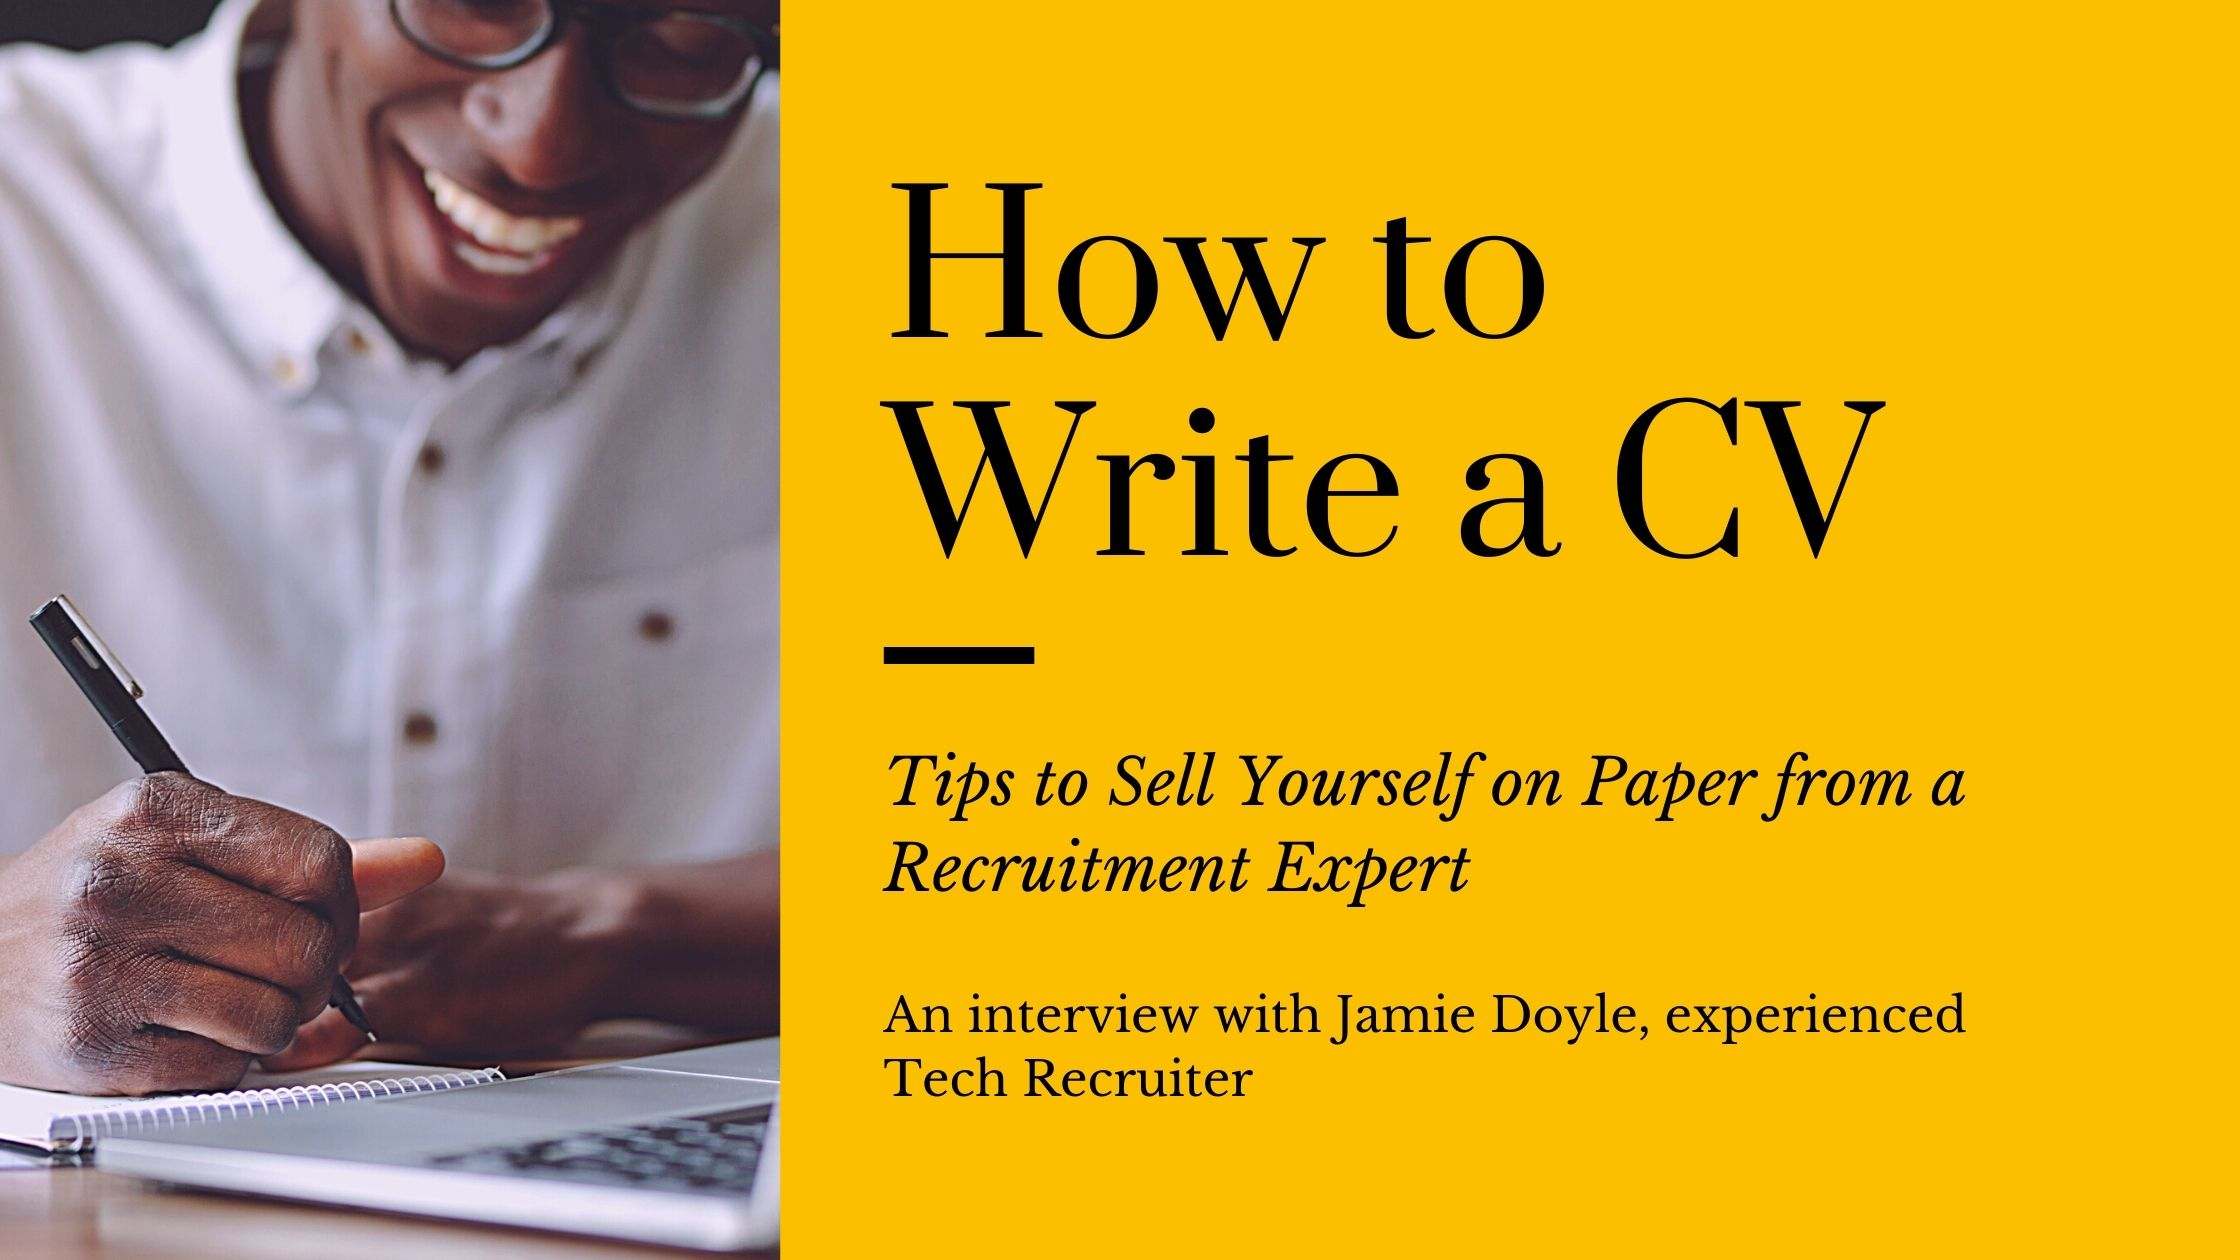 On the left third of the image is a man smiling whilst wearing a white shirt and black glasses, he is looking down at his hands whilst he writes in a white note book, just in front of this notebook is a laptop keyboard in the foreground of the image. To the right is a yellow background. In large black text reads 'How to Write a CV', followed underneath in smaller italic text 'Tips to Sell Yourself on Paper from a Recruitment Expert'. Underneath this in black text reads 'An interview with Jamie Doyle, experienced Tech Recruiter'.